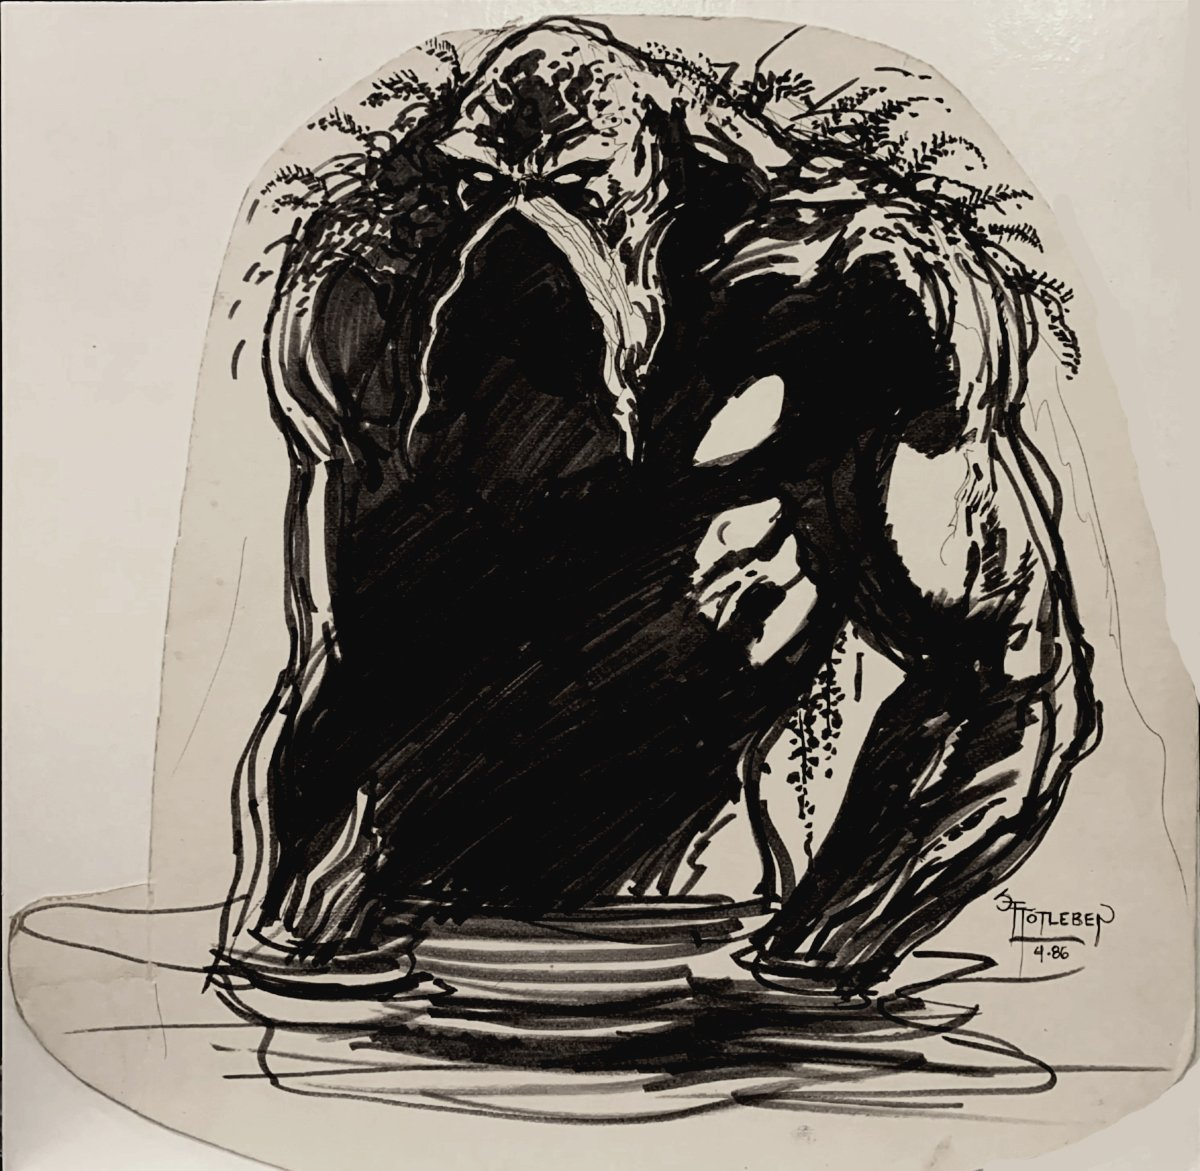 Large Swamp Thing Illustration Drawn When Totleben Was STILL Drawing The Swamp Thing Comic Book! (1986)